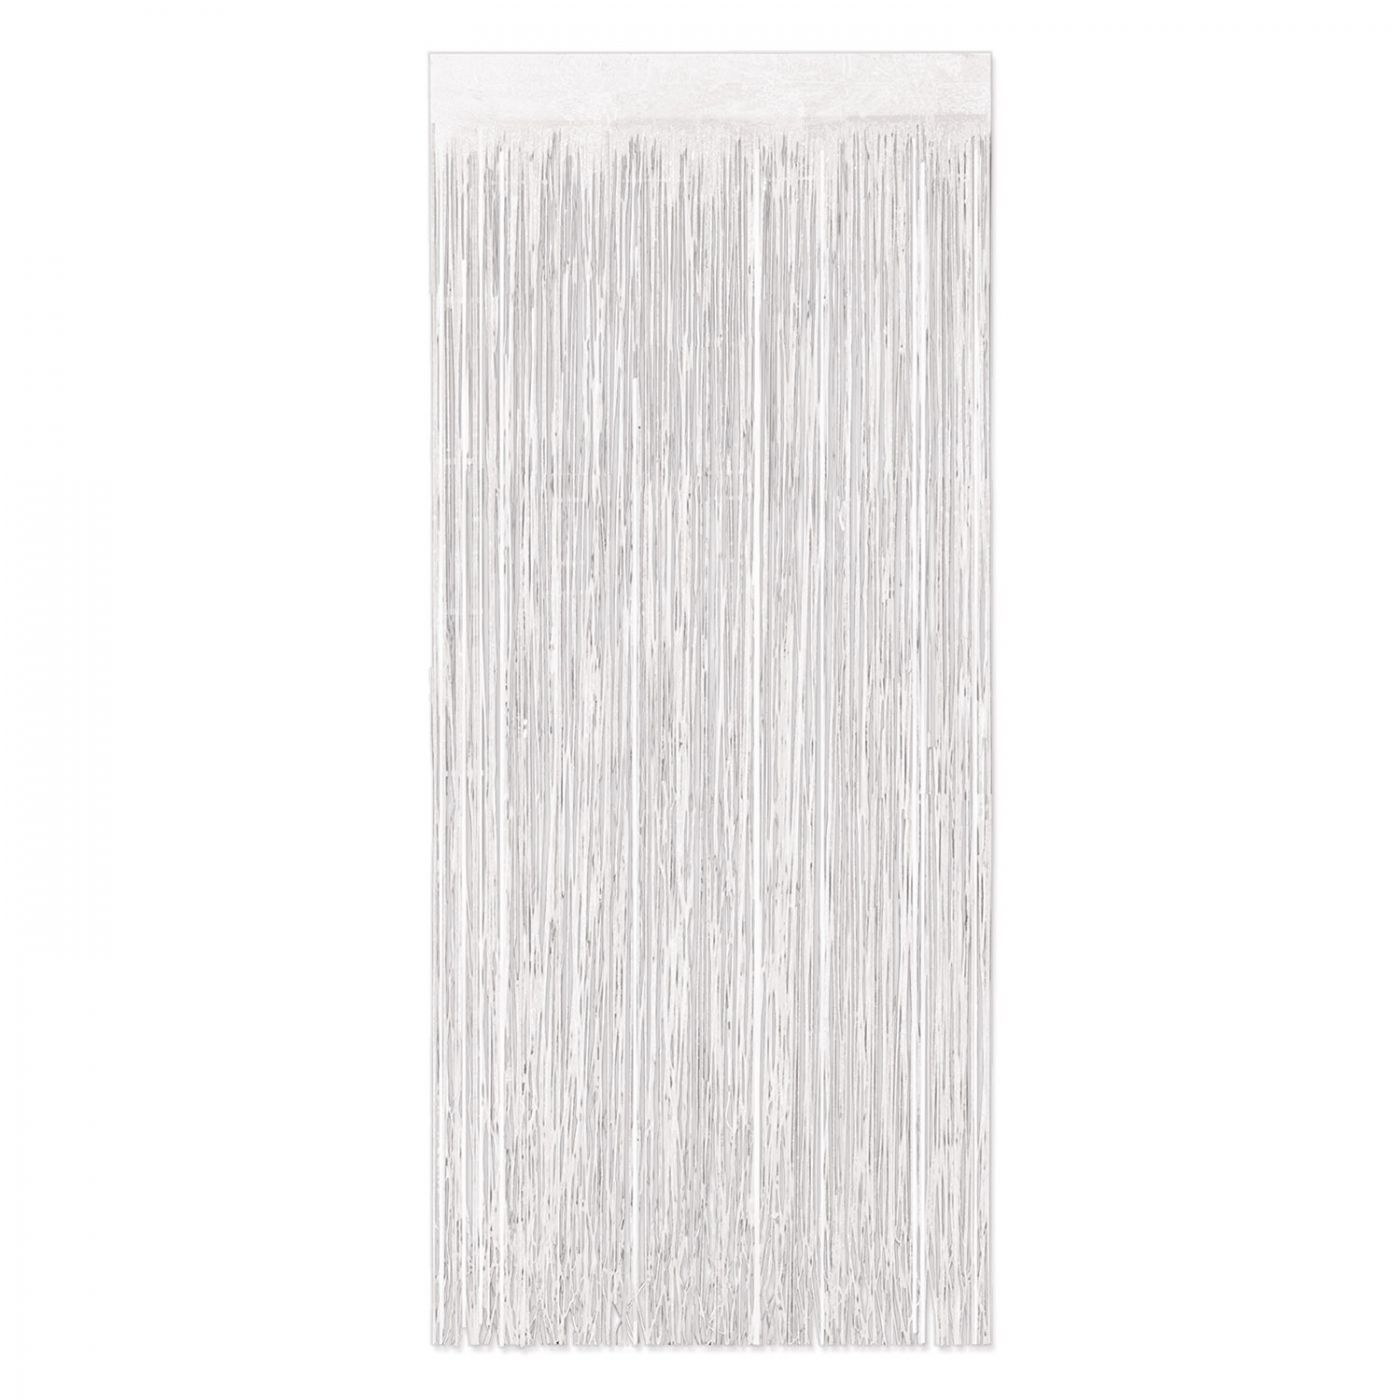 Image of 2-Ply FR Gleam 'N Curtain (6)